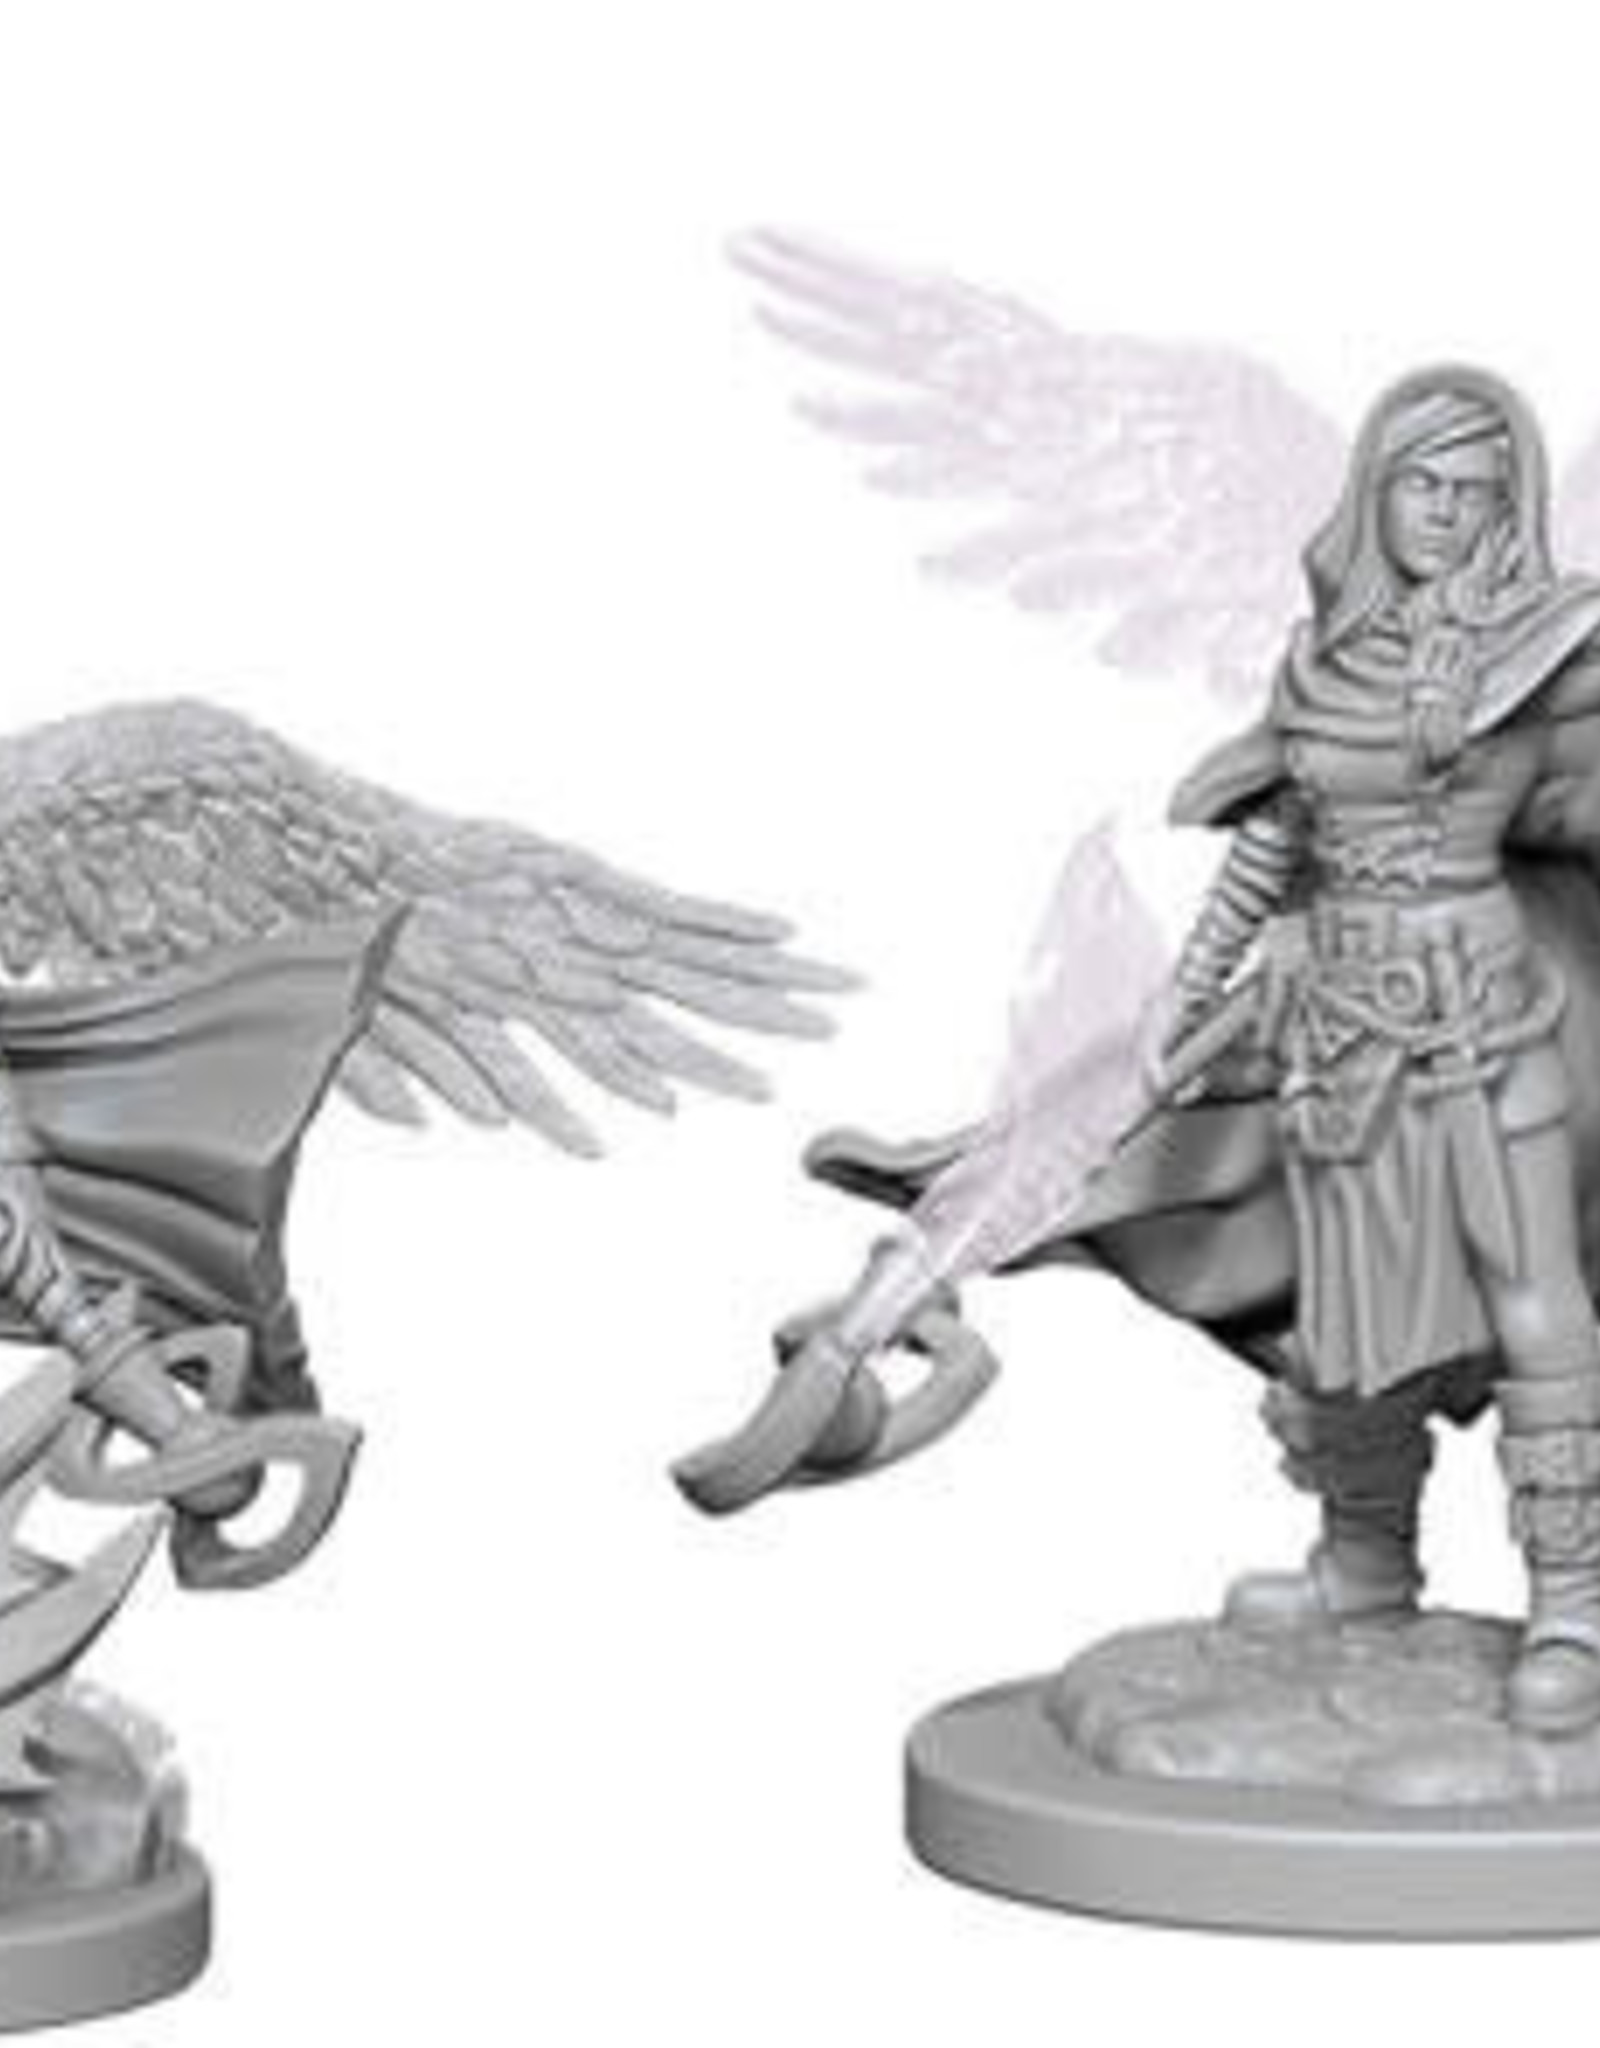 WizKids D&D Nolzur Aasimar Wizard (She/Her/They/Them)